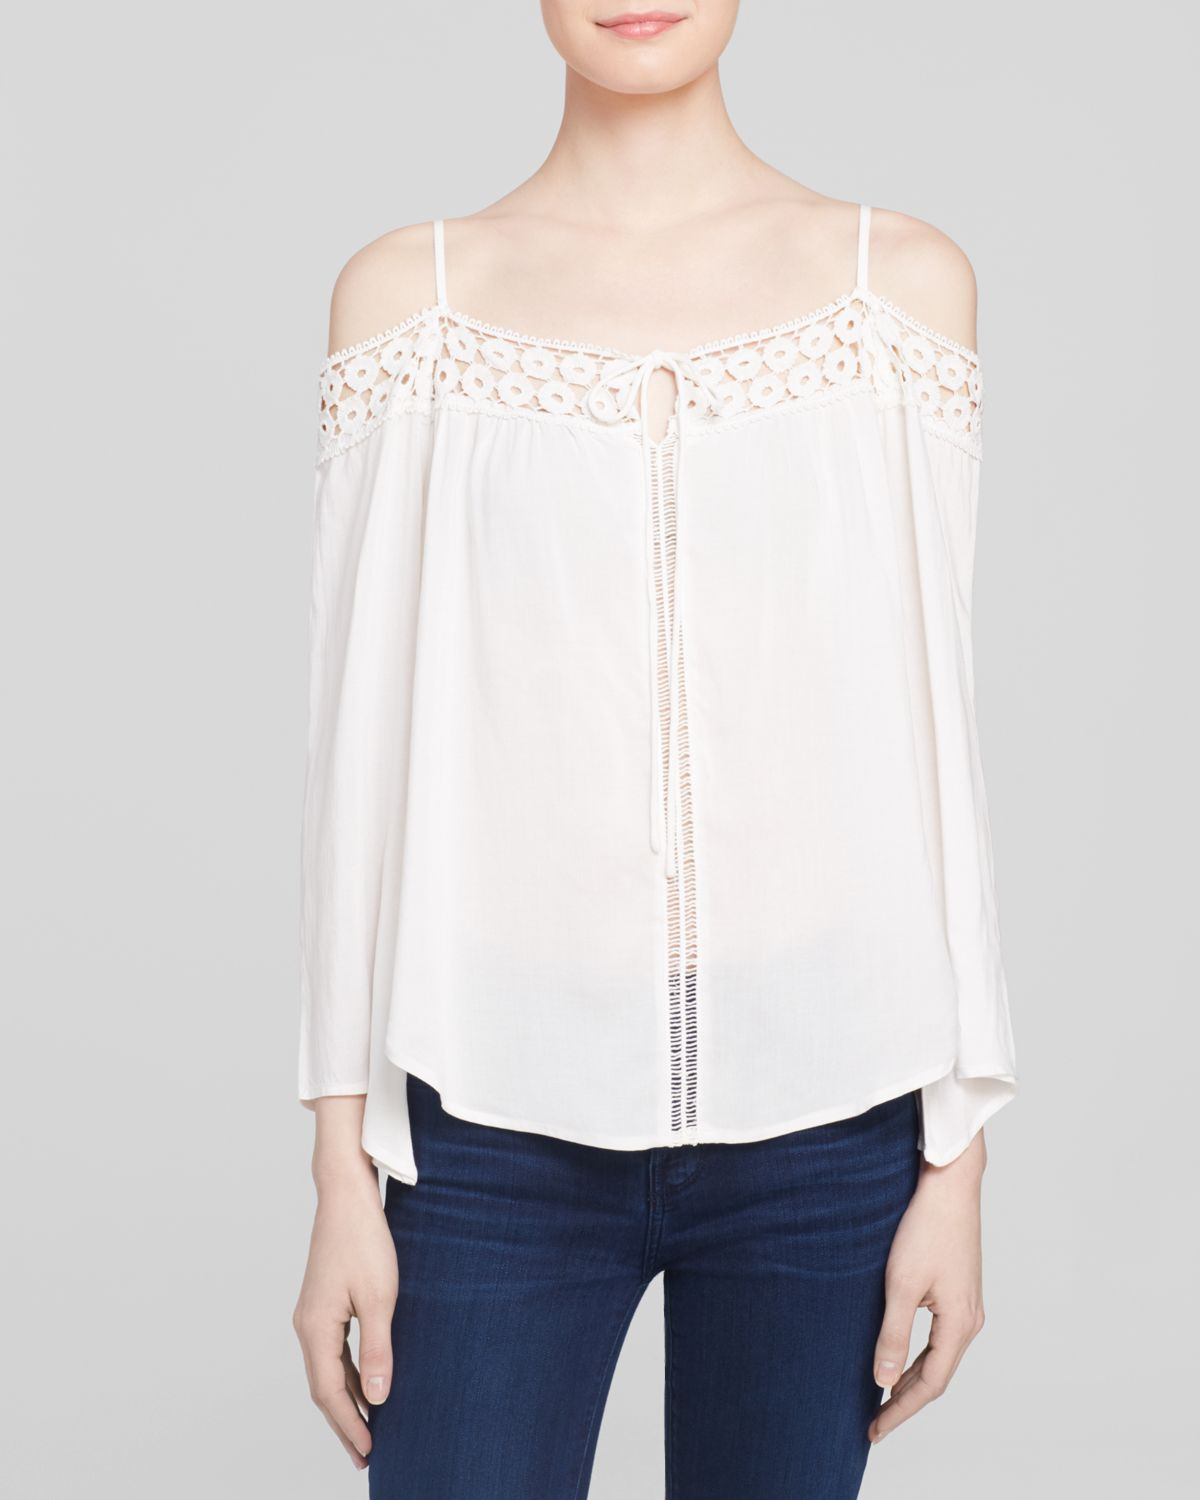 Images of Off Shoulder White Blouse - Reikian